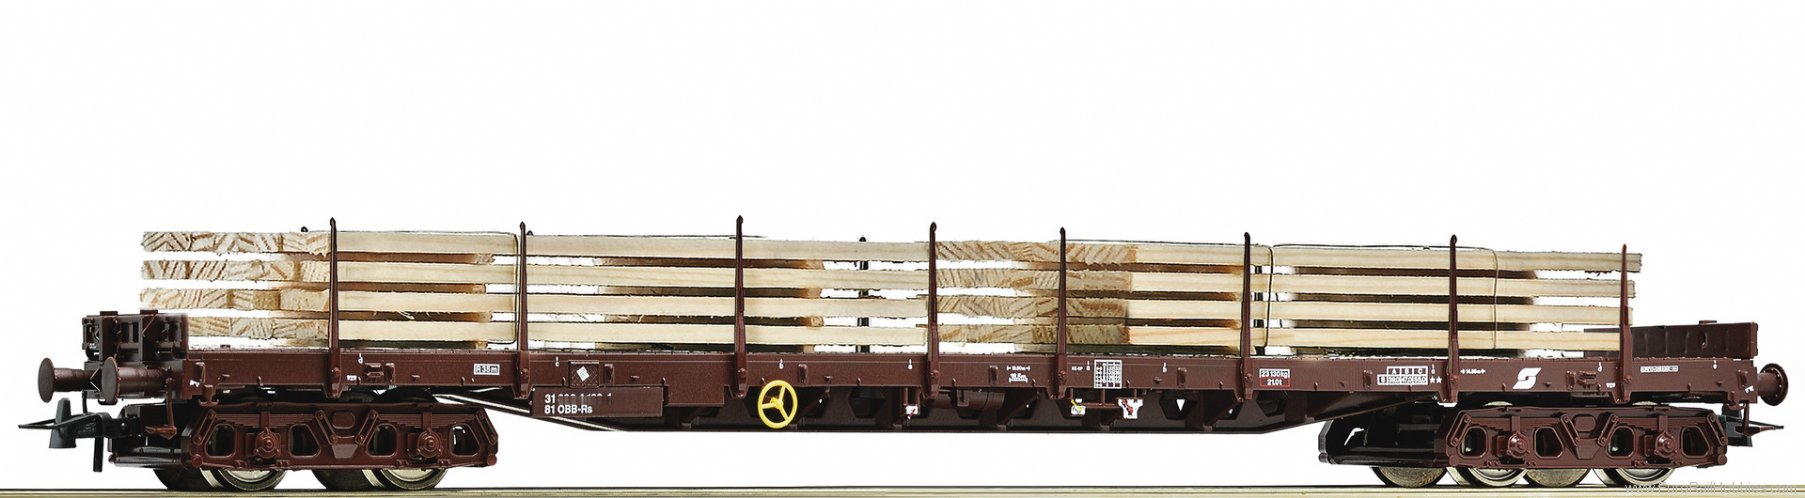 Roco 76772 Stake wagon that carries wood stacks, OBB